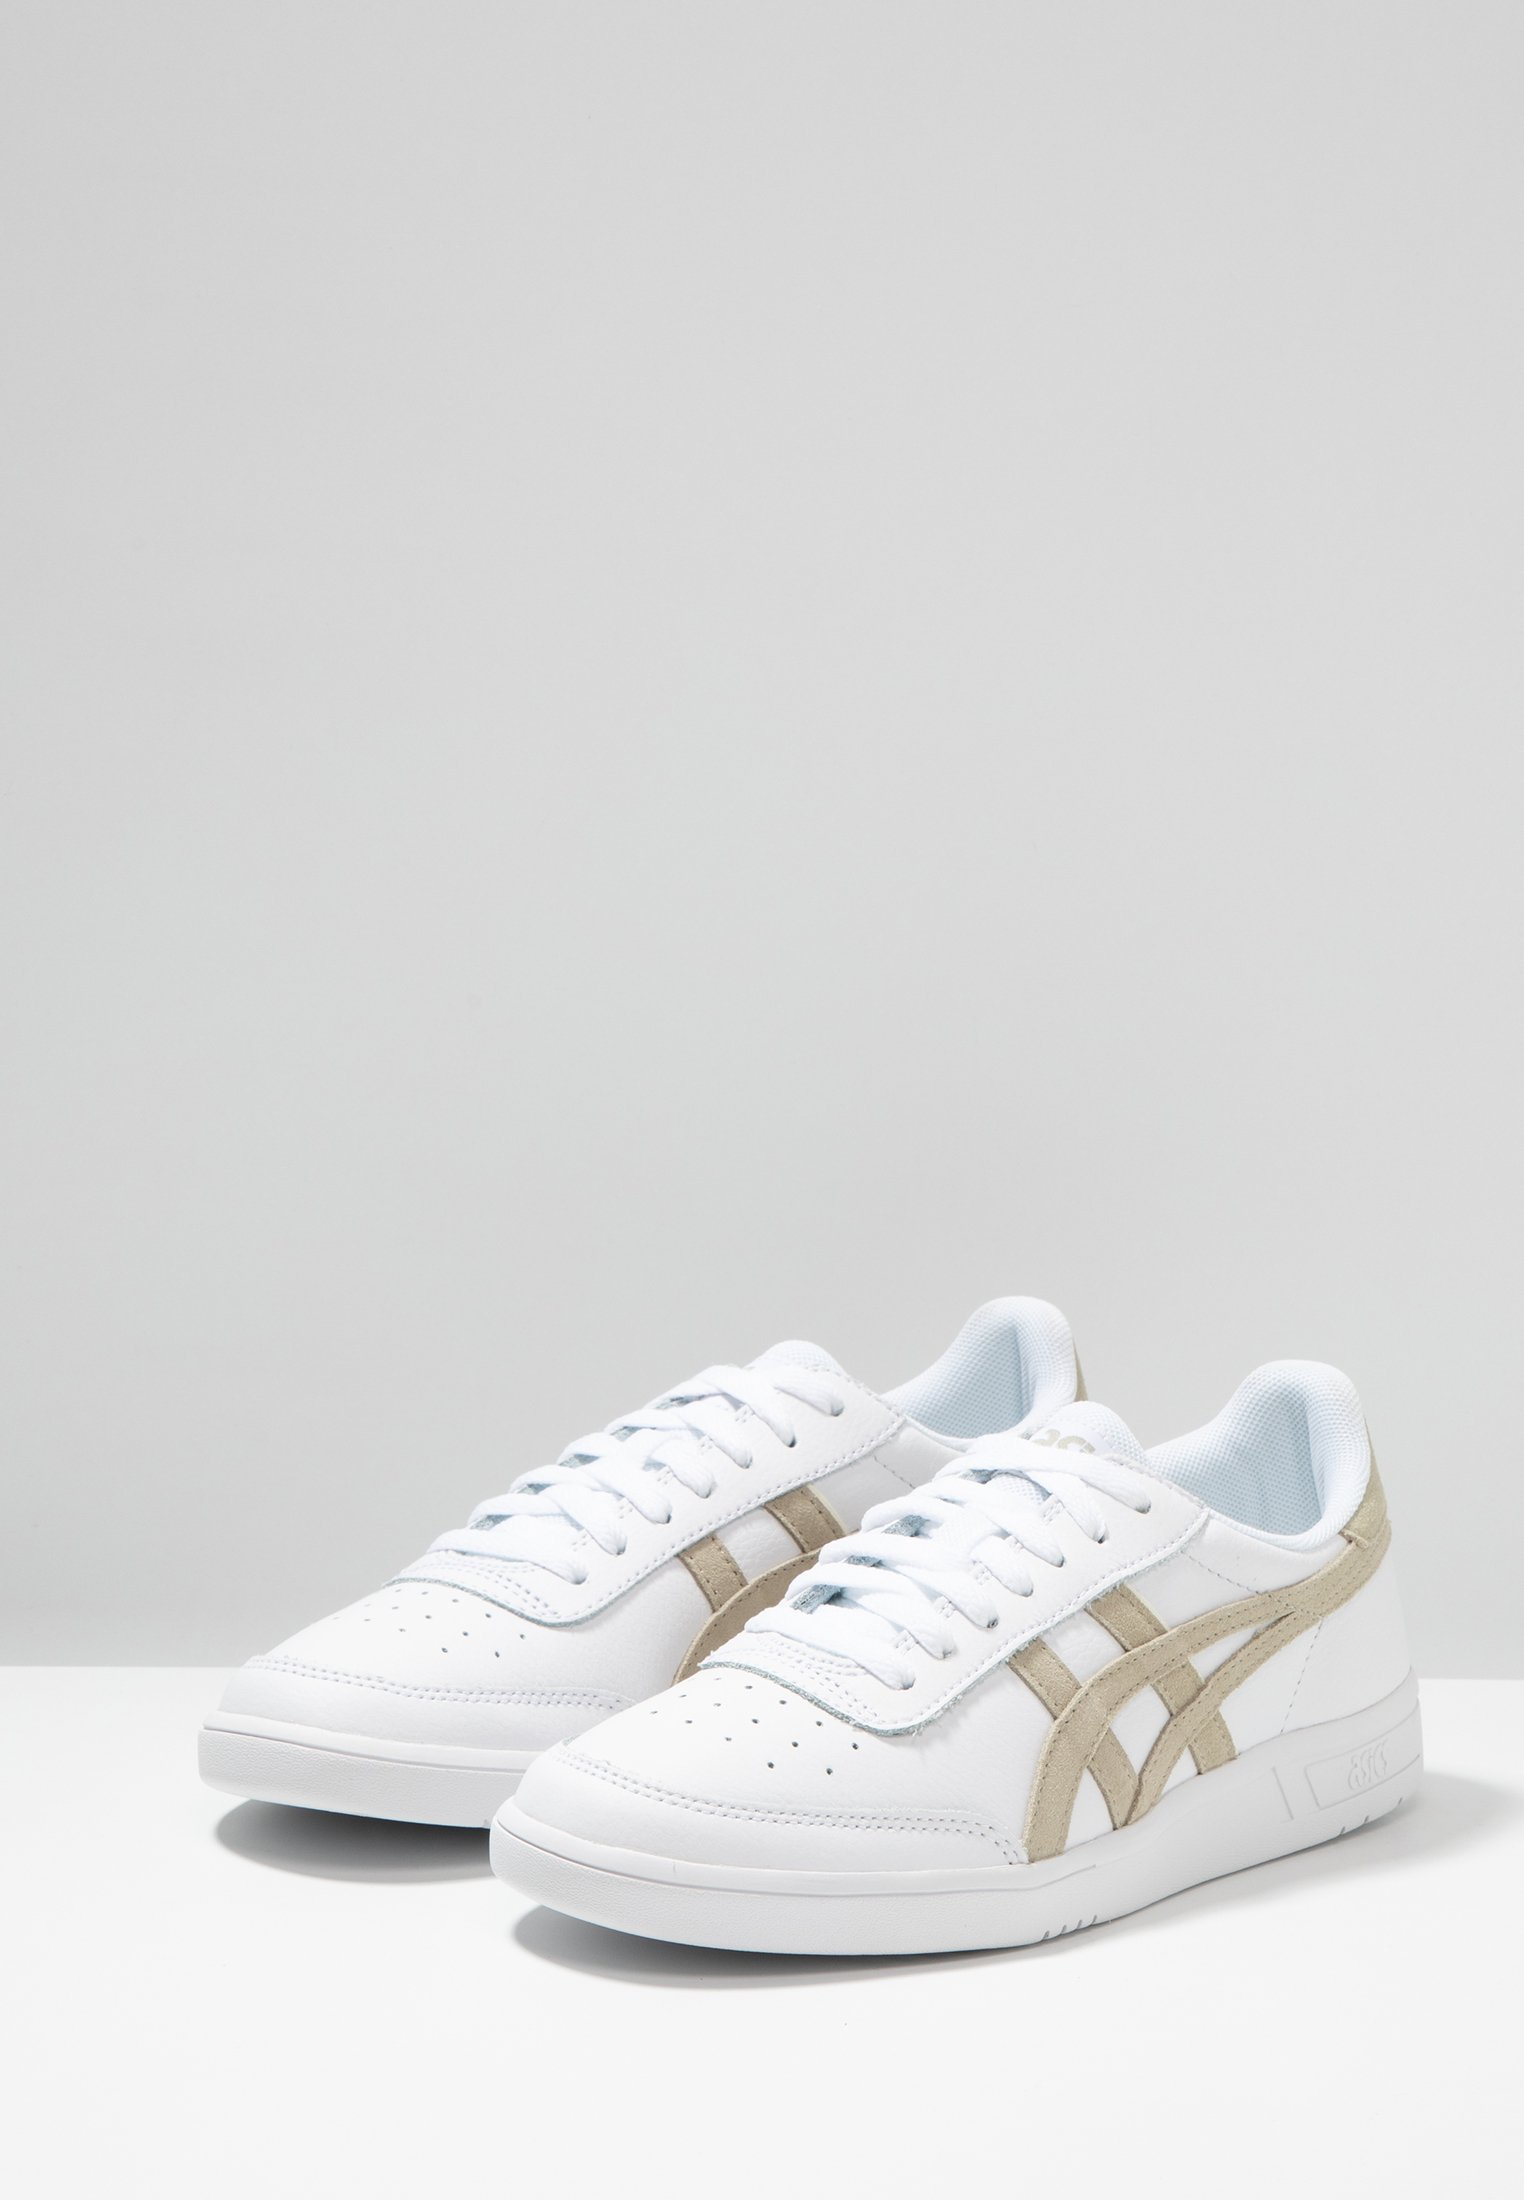 onitsuka tiger mexico 66 yellow zalando japan women's diamond